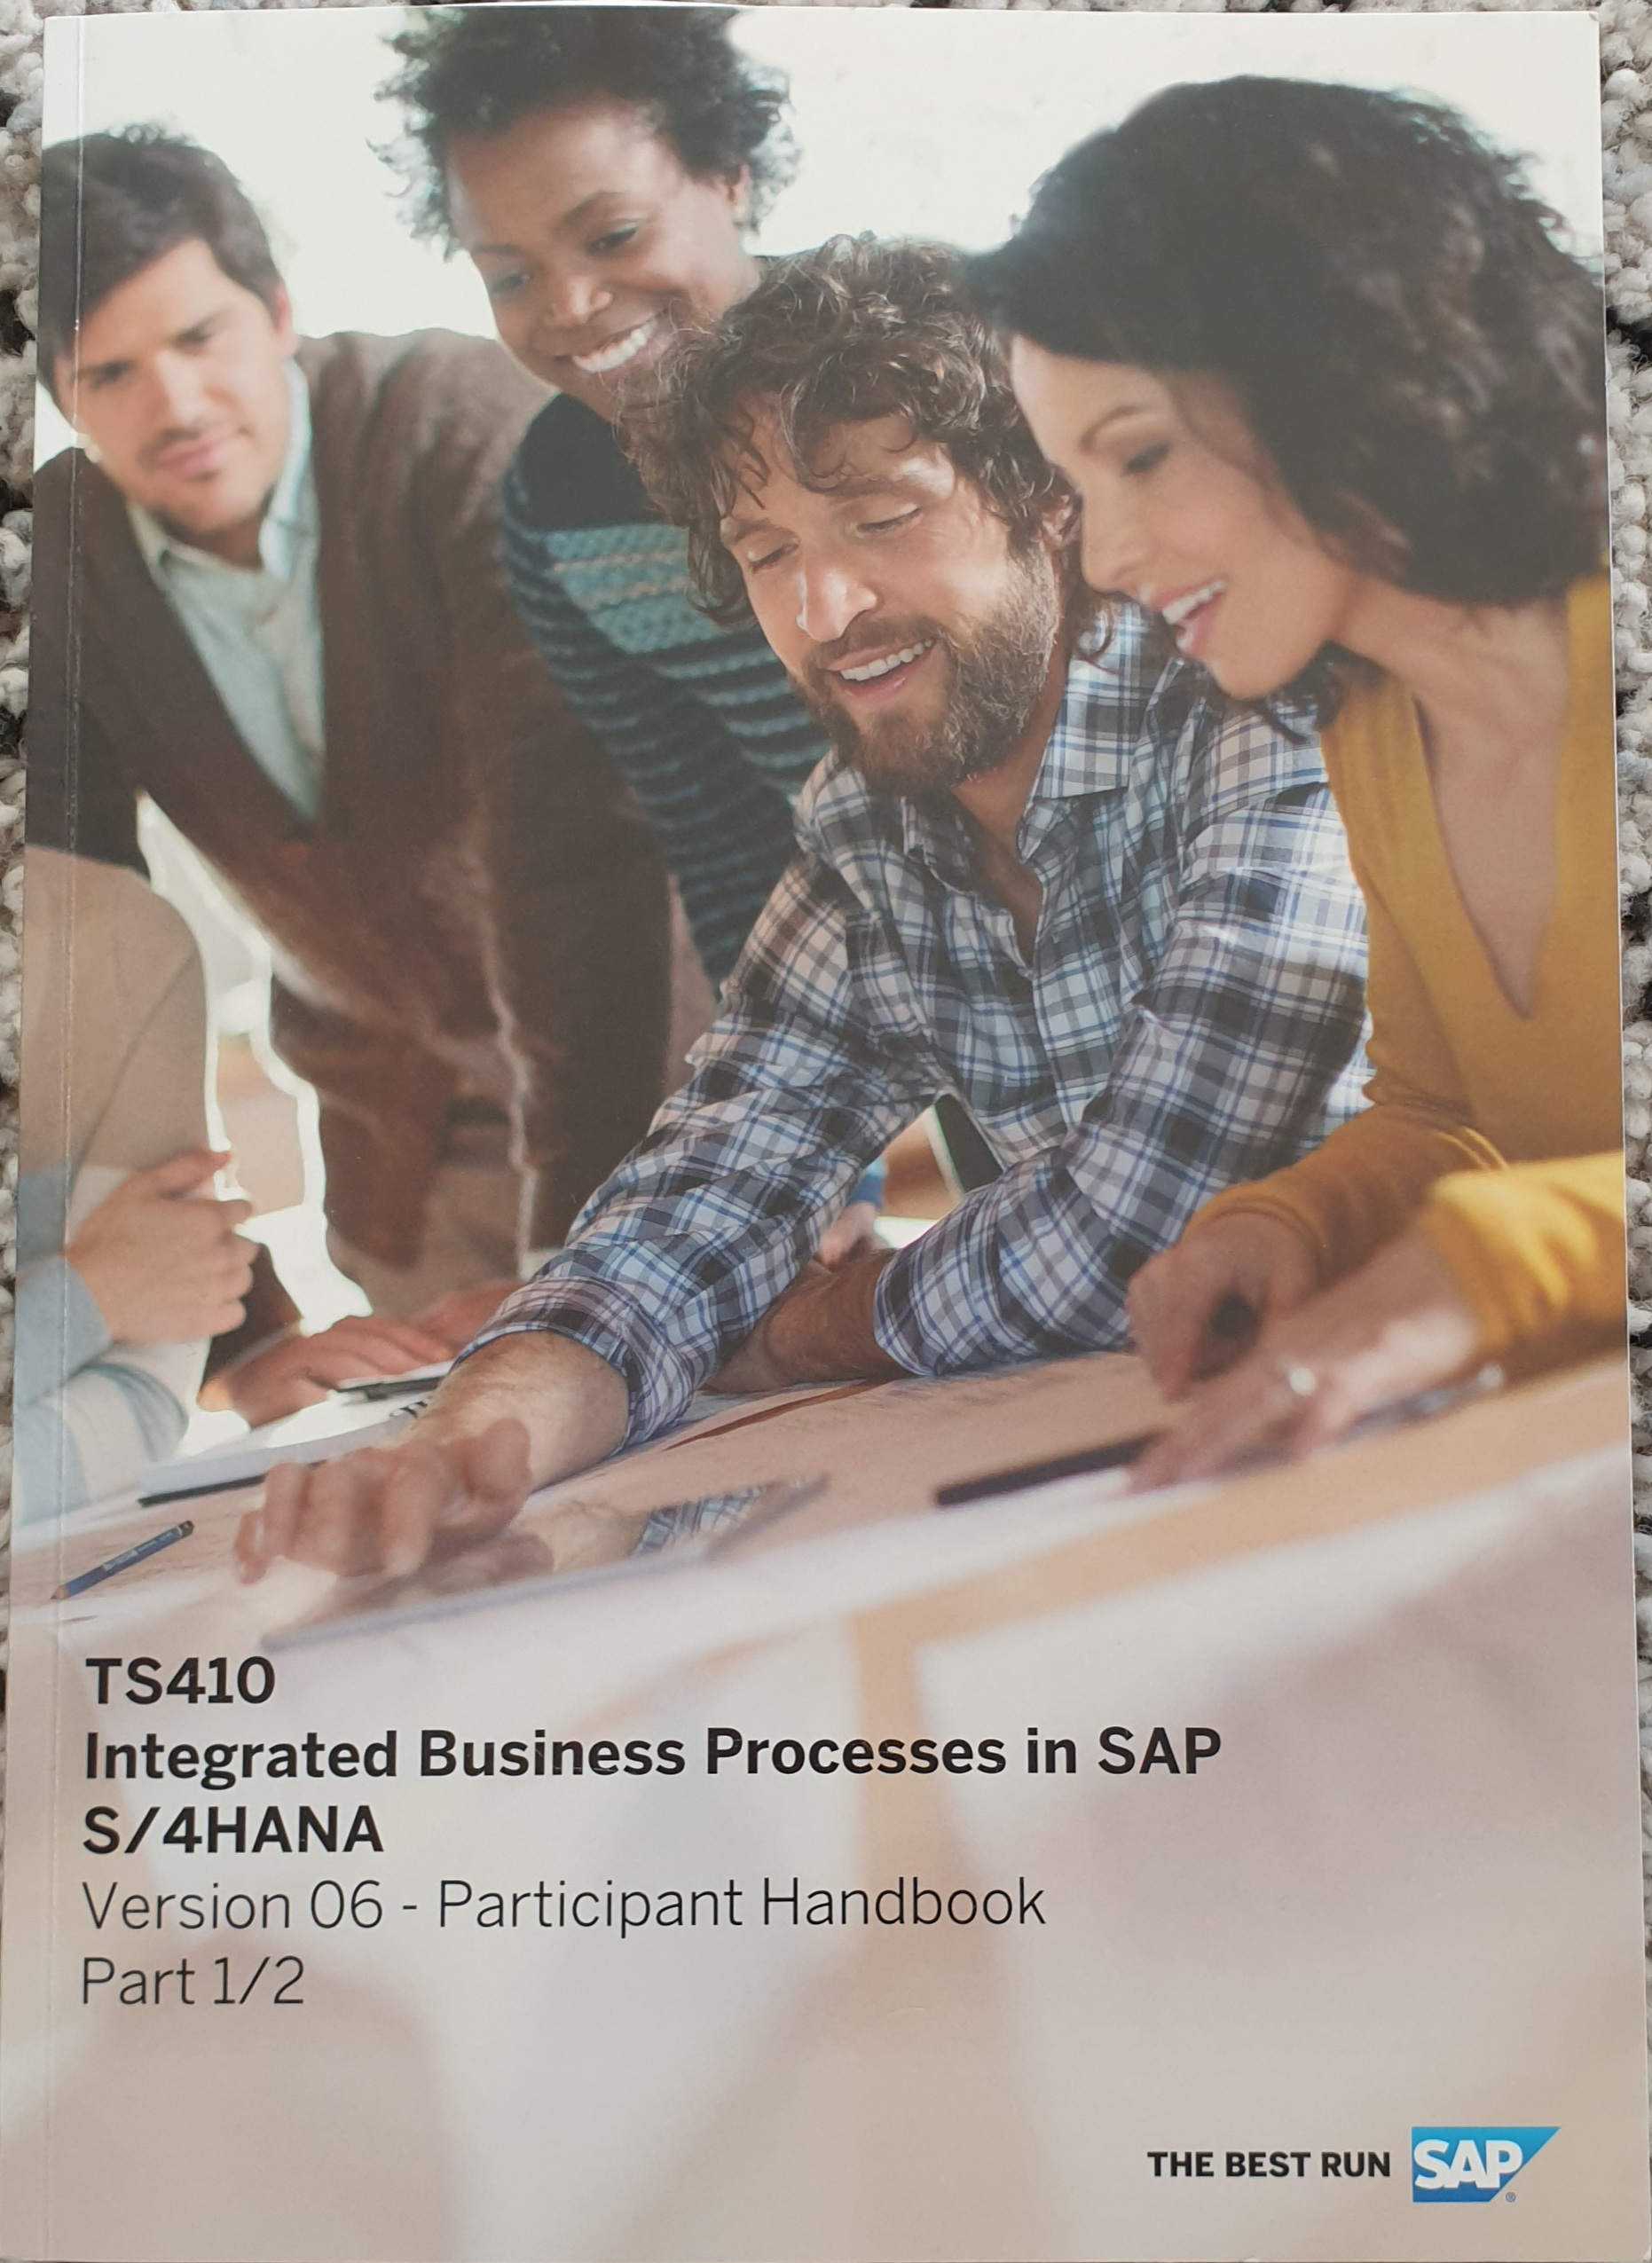 TS410 Integrated Business Processes in SAP S/4 Hana (#1-2)